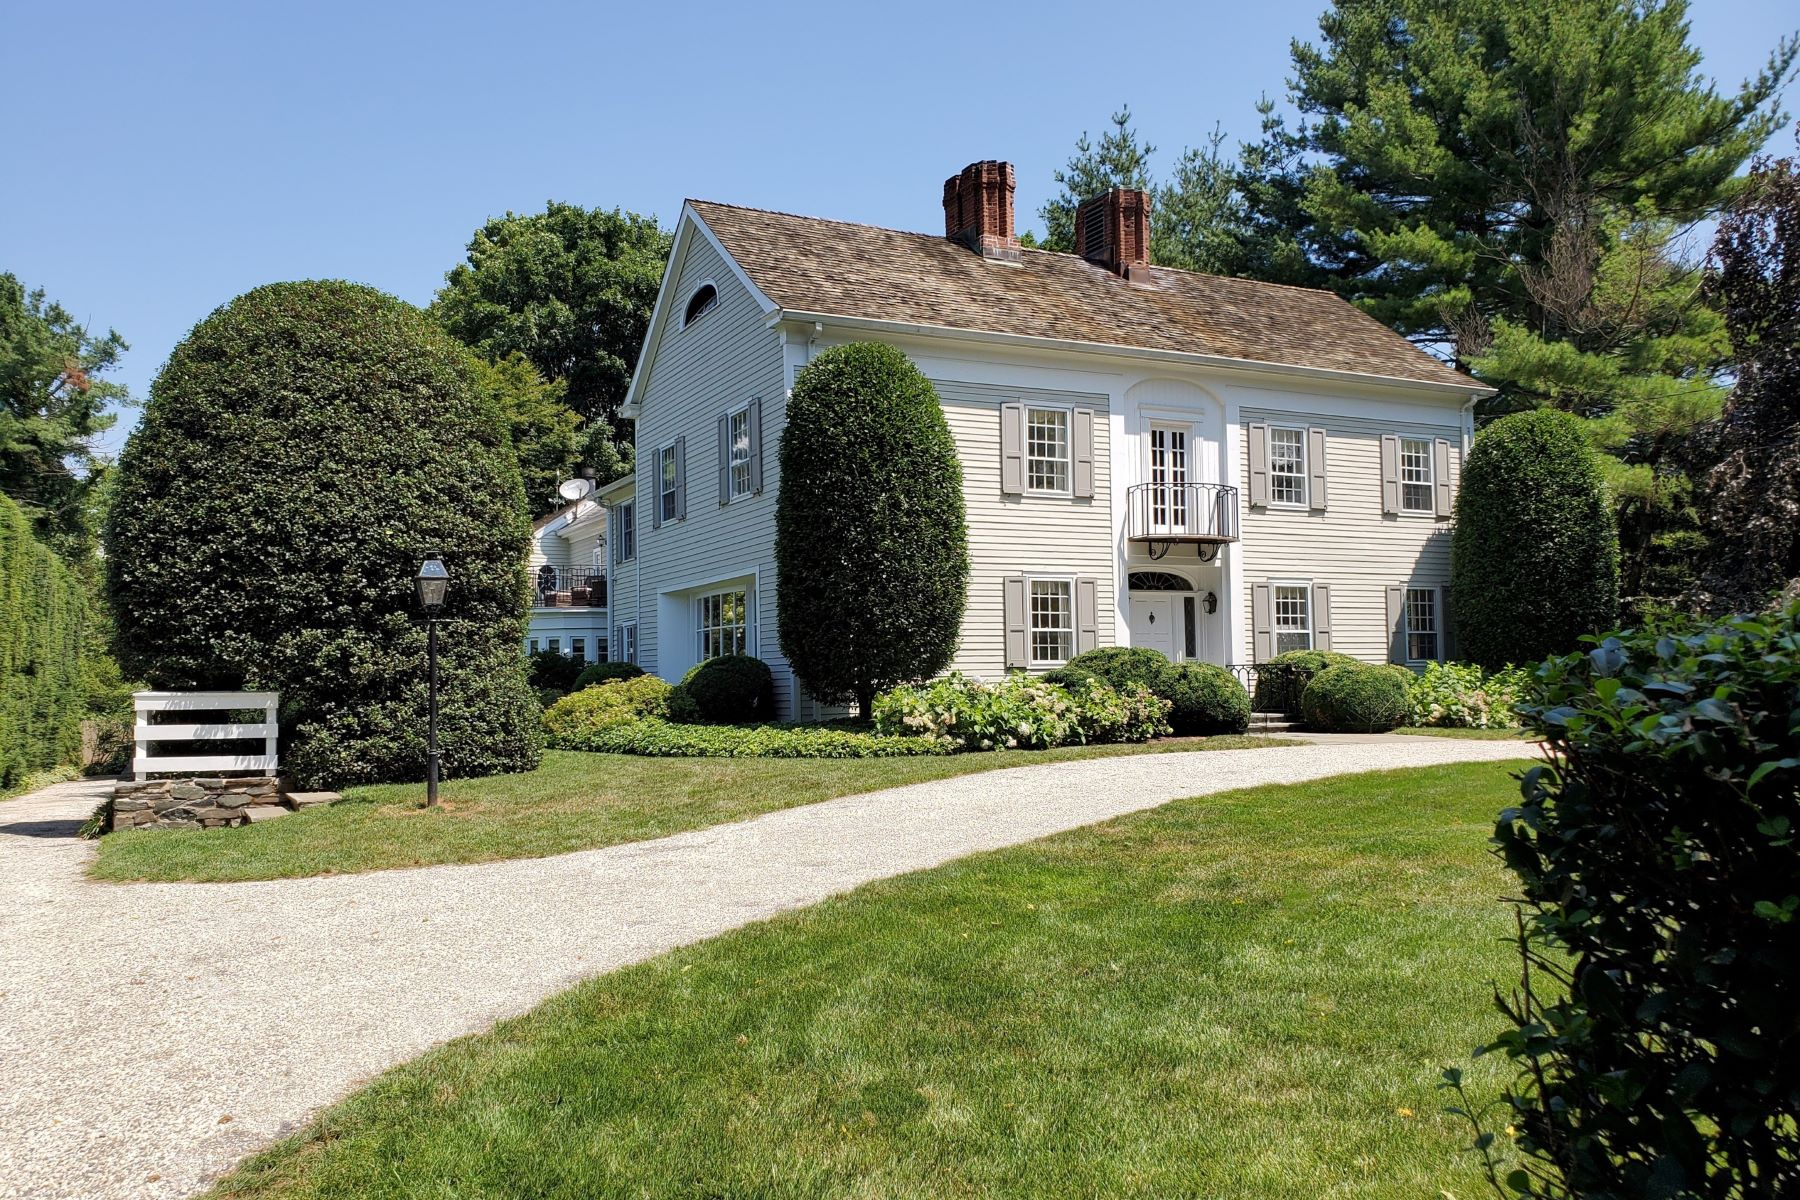 Single Family Homes for Sale at Classic 5 Bed Colonial 60 Chester Place, Fairfield, Connecticut 06890 United States